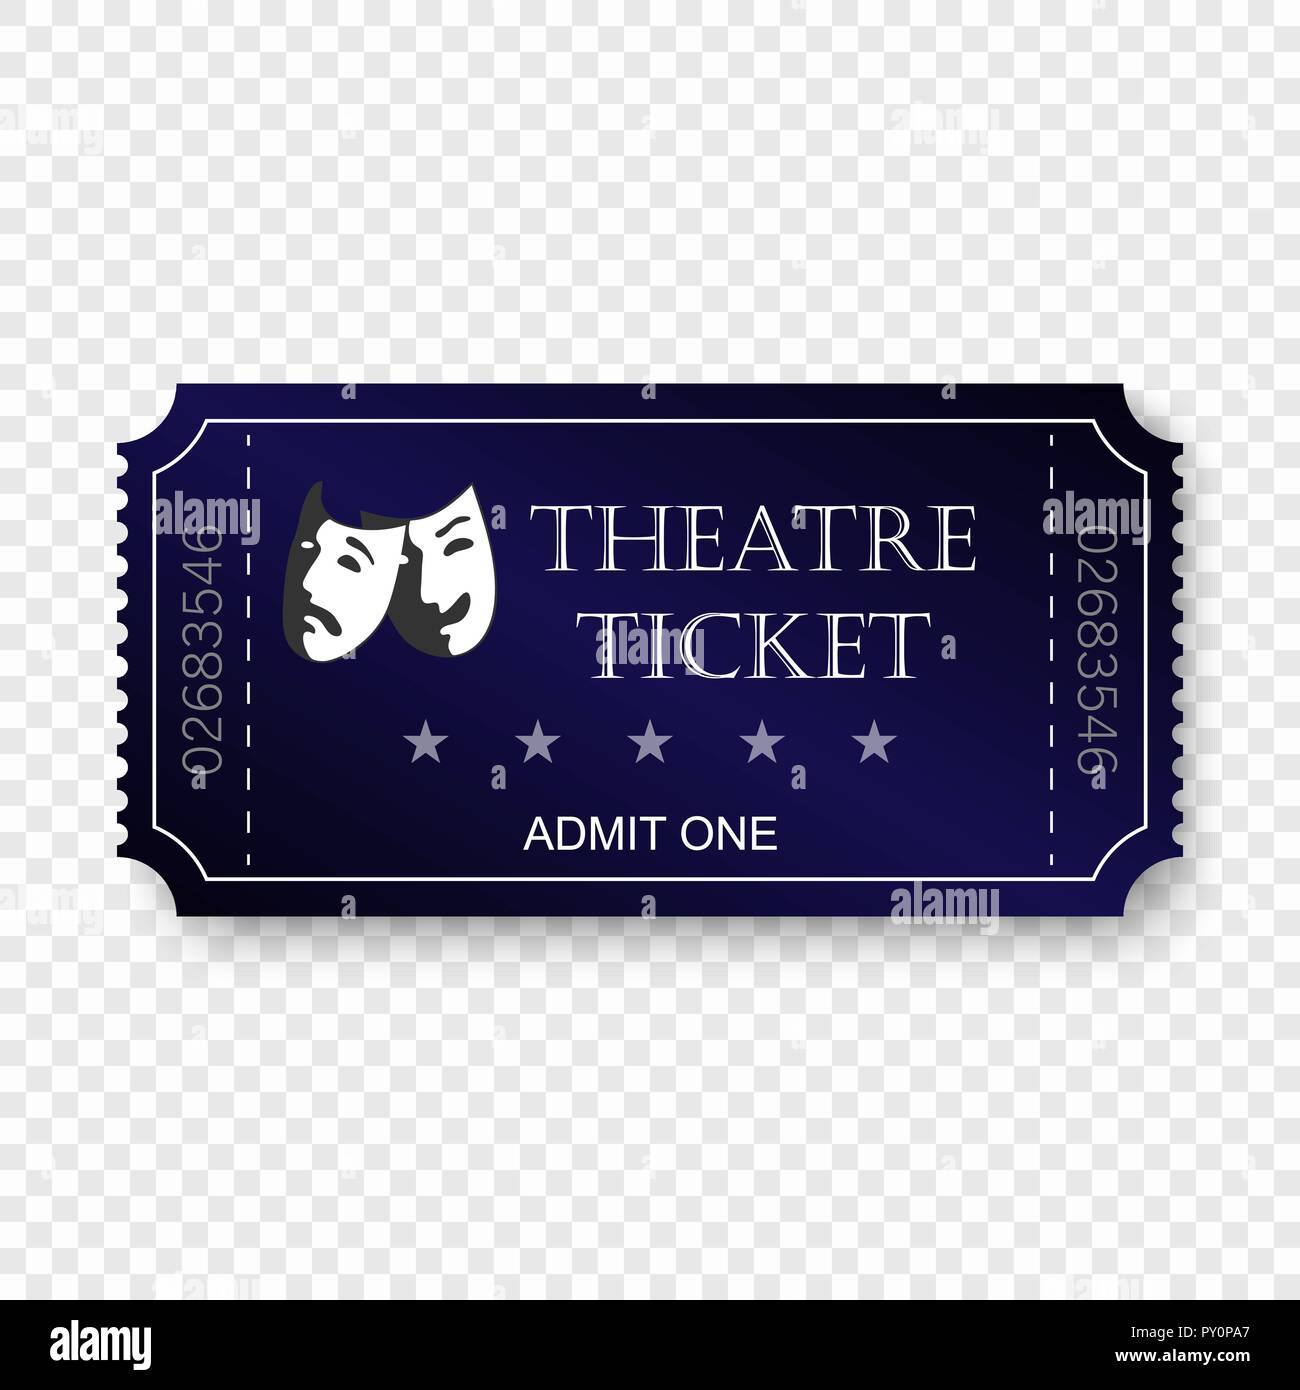 Theater Ticket Template from c8.alamy.com